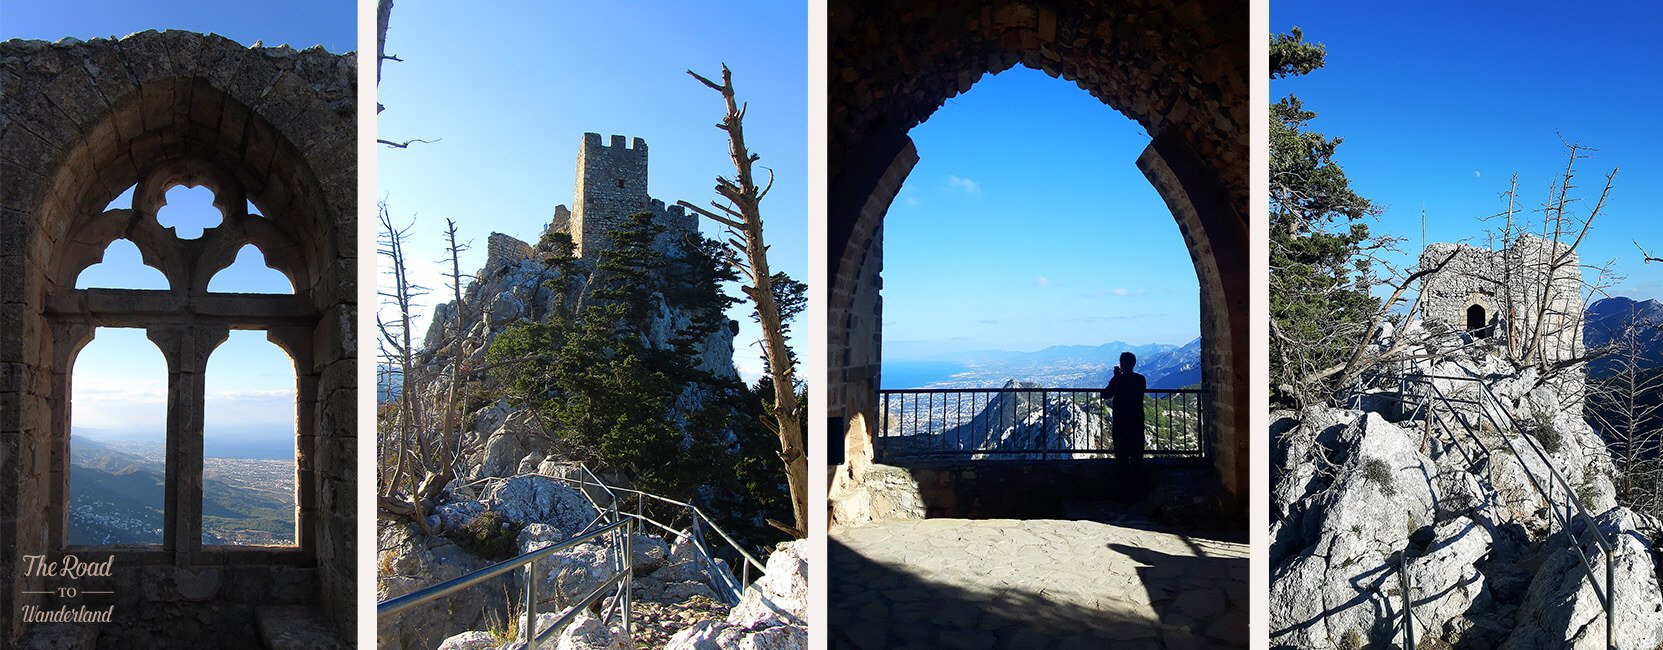 Windows, turrets & viewpoints, collage of St Hilarion